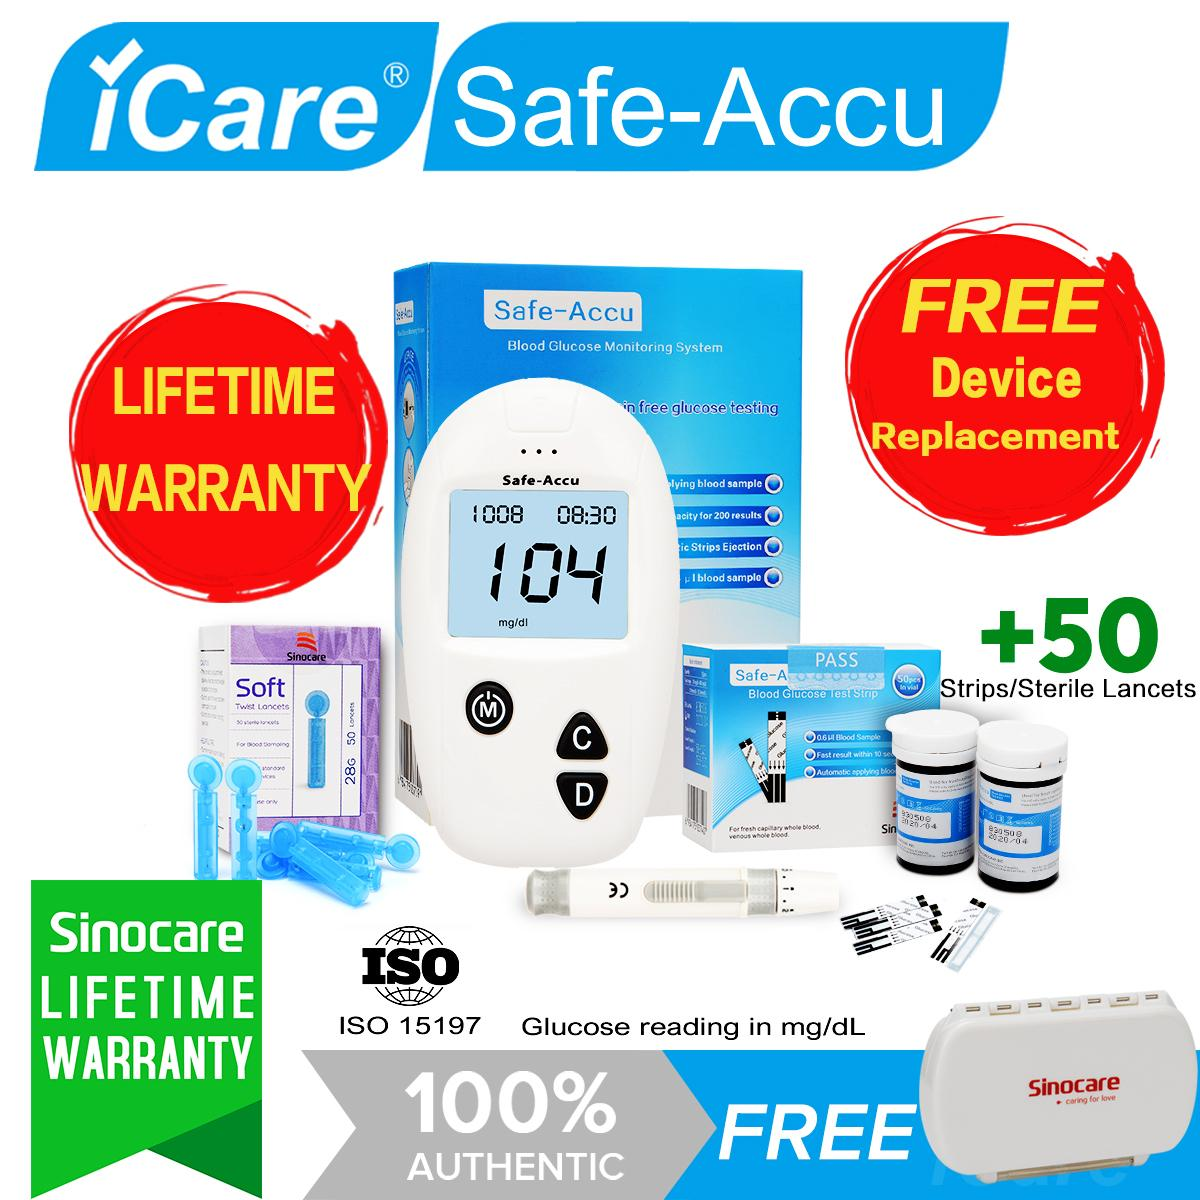 Safe-Accu SA50mc Glucose Meter SET (1 Blood sugar Glucose monitor+50  Strips+50 Lancets+1 Lancing Device+Carrying Case) for Diabetic people+FREE